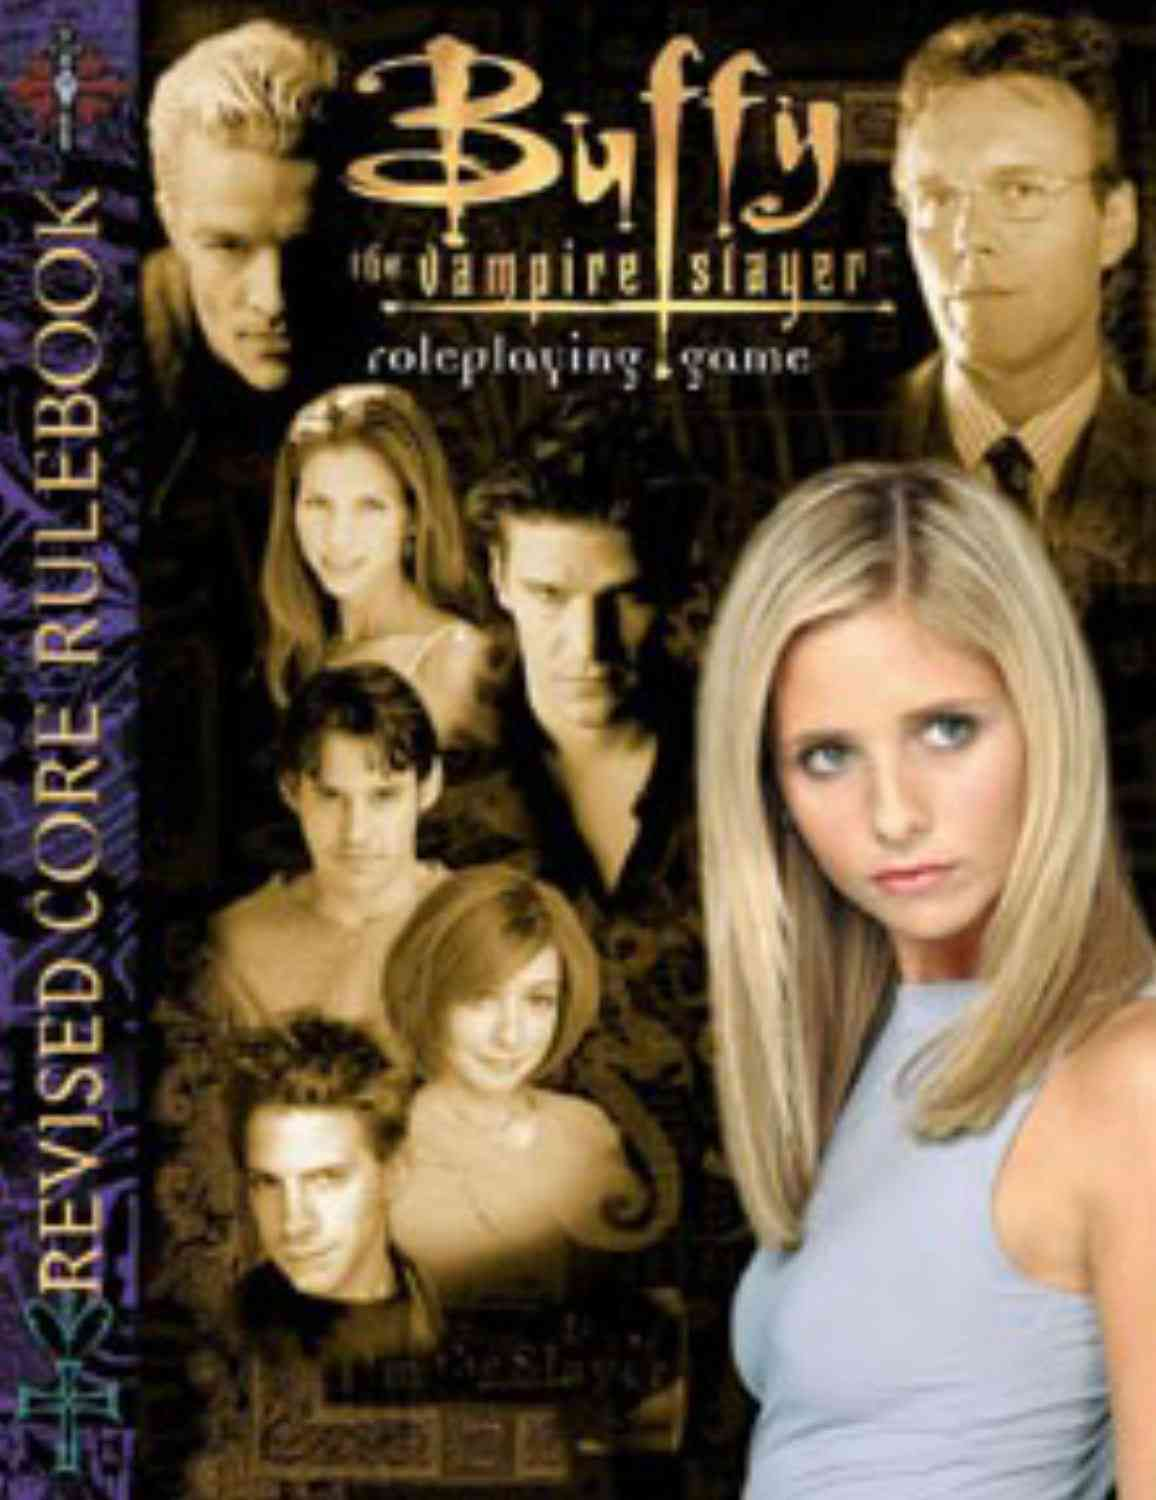 Buffy The Vampire Slayer Roleplaying Game: Core Rulebook (Hardcover)